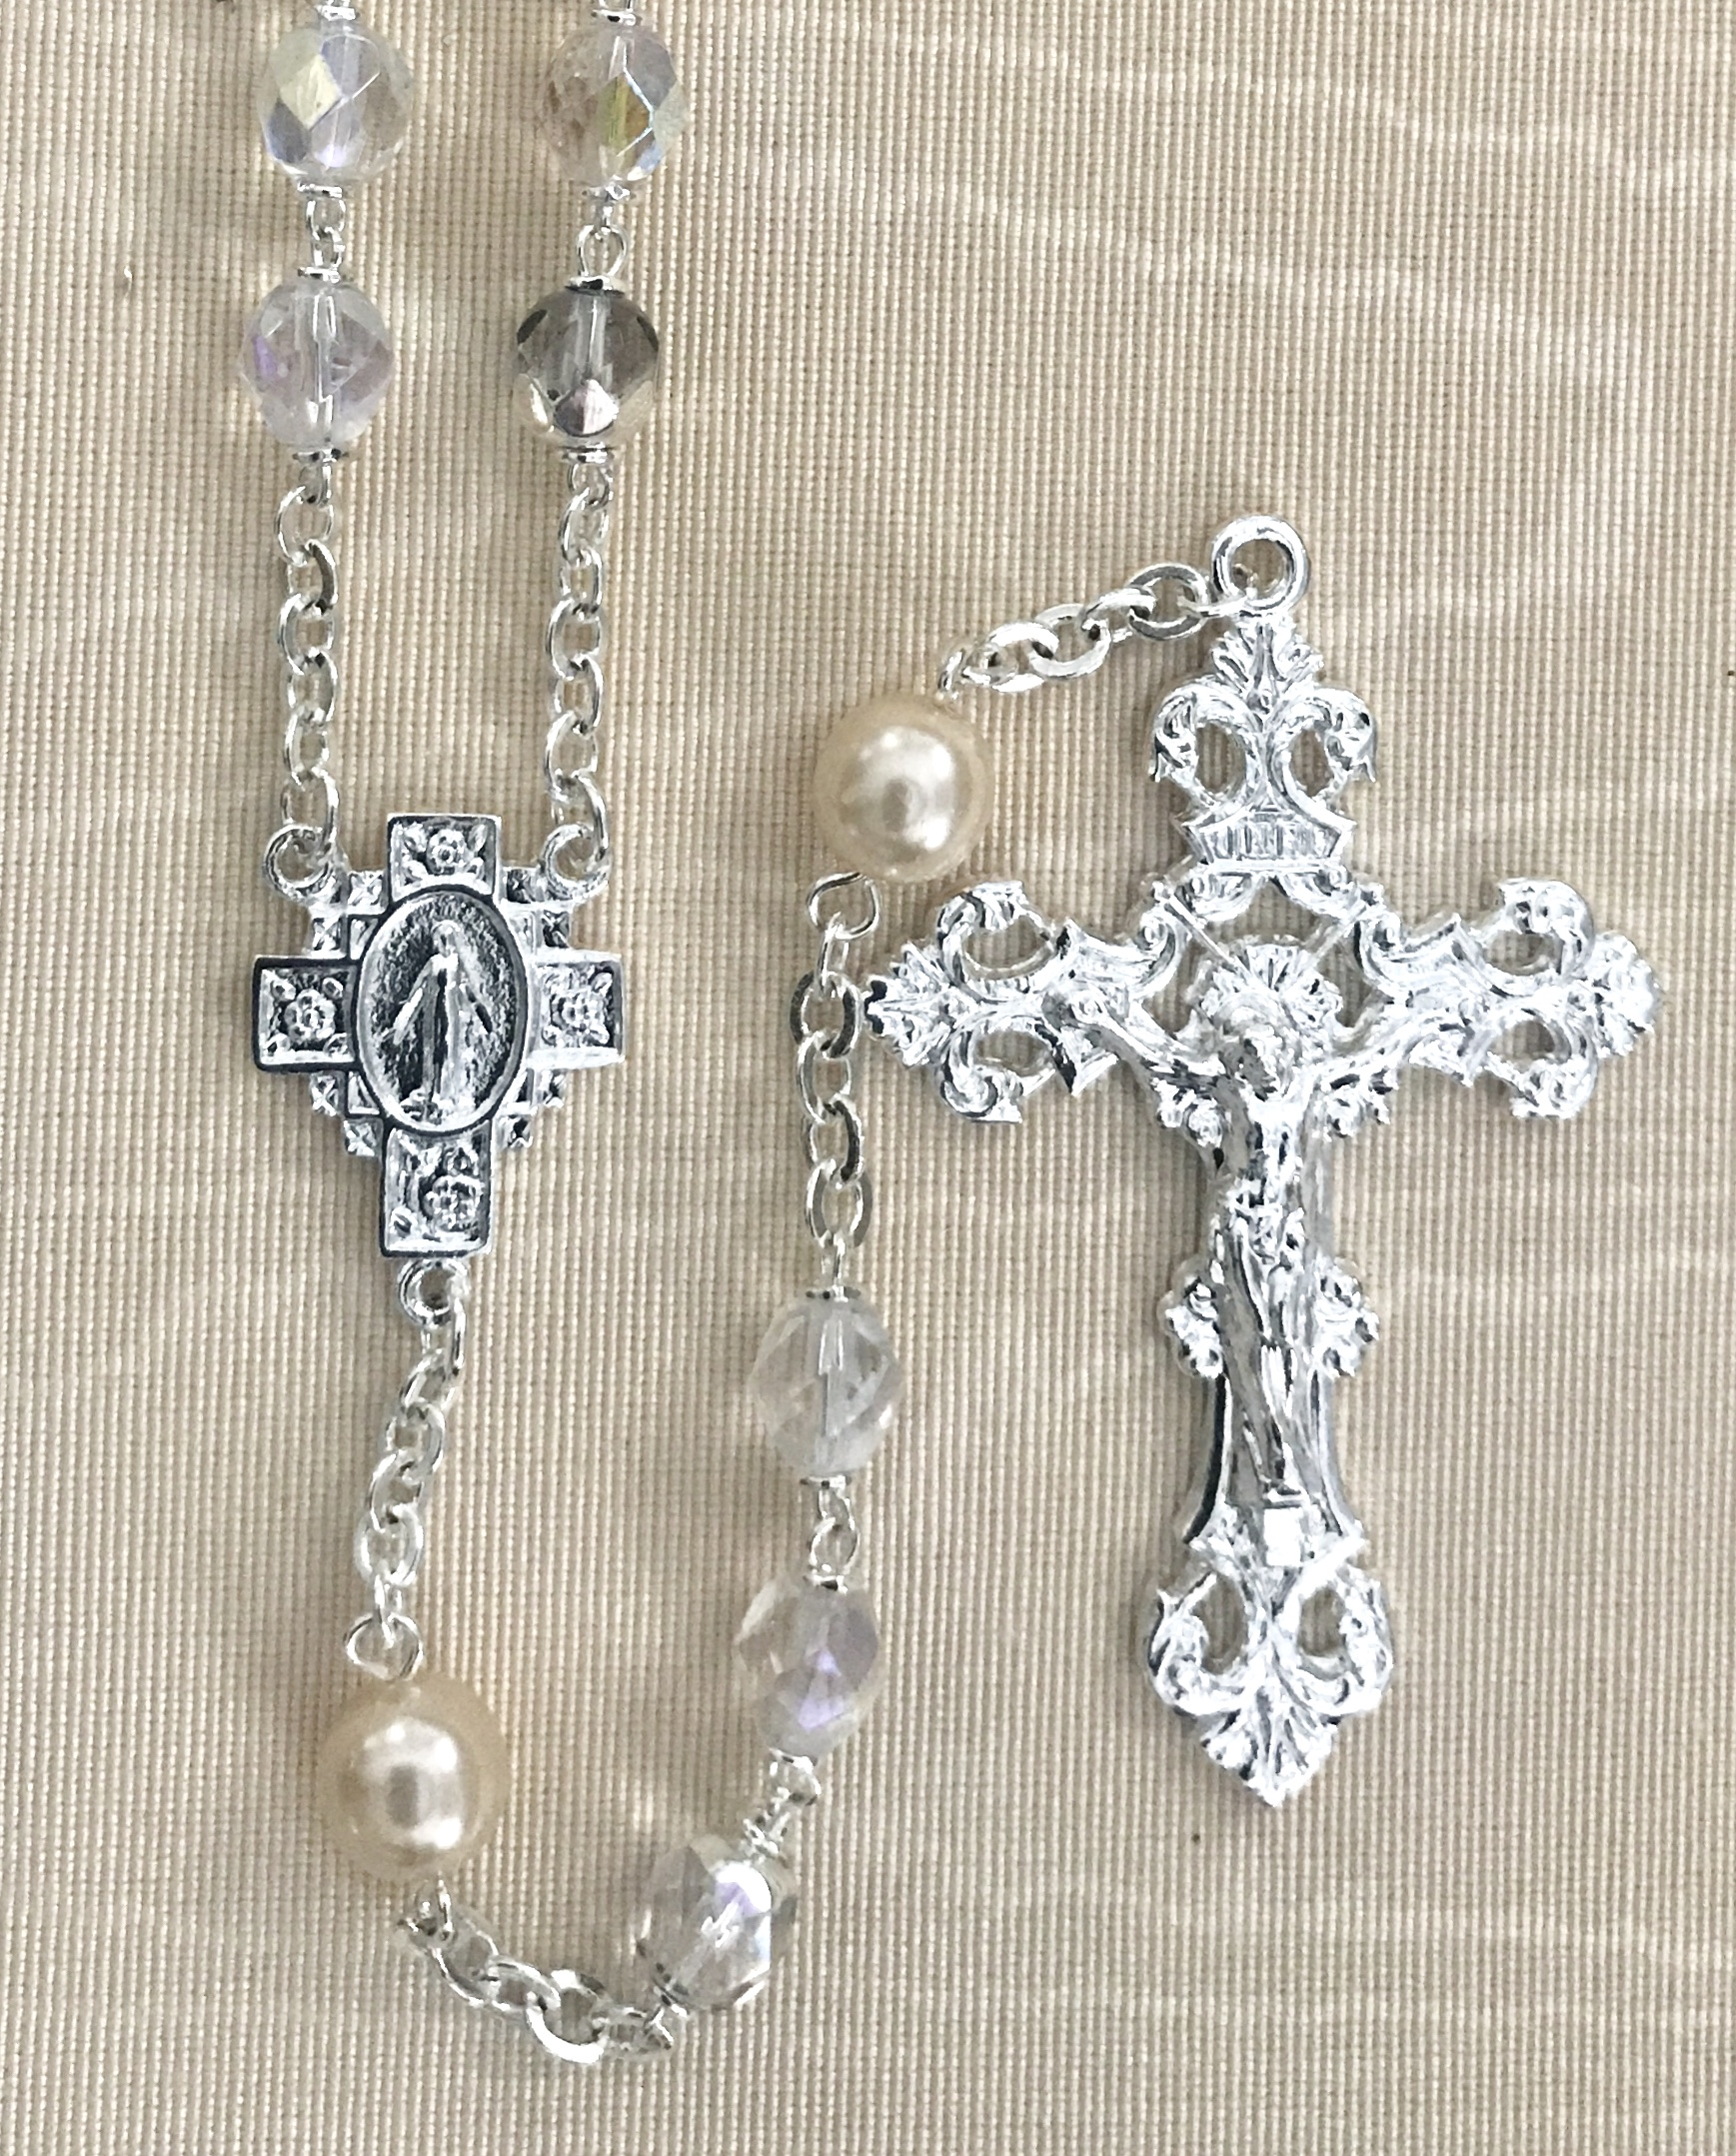 November 7mm CRYSTAL AB with TOPAZ PEARL OUR FATHER BEADS S.S. PLATE LOC-LINK - GIFT BOXED